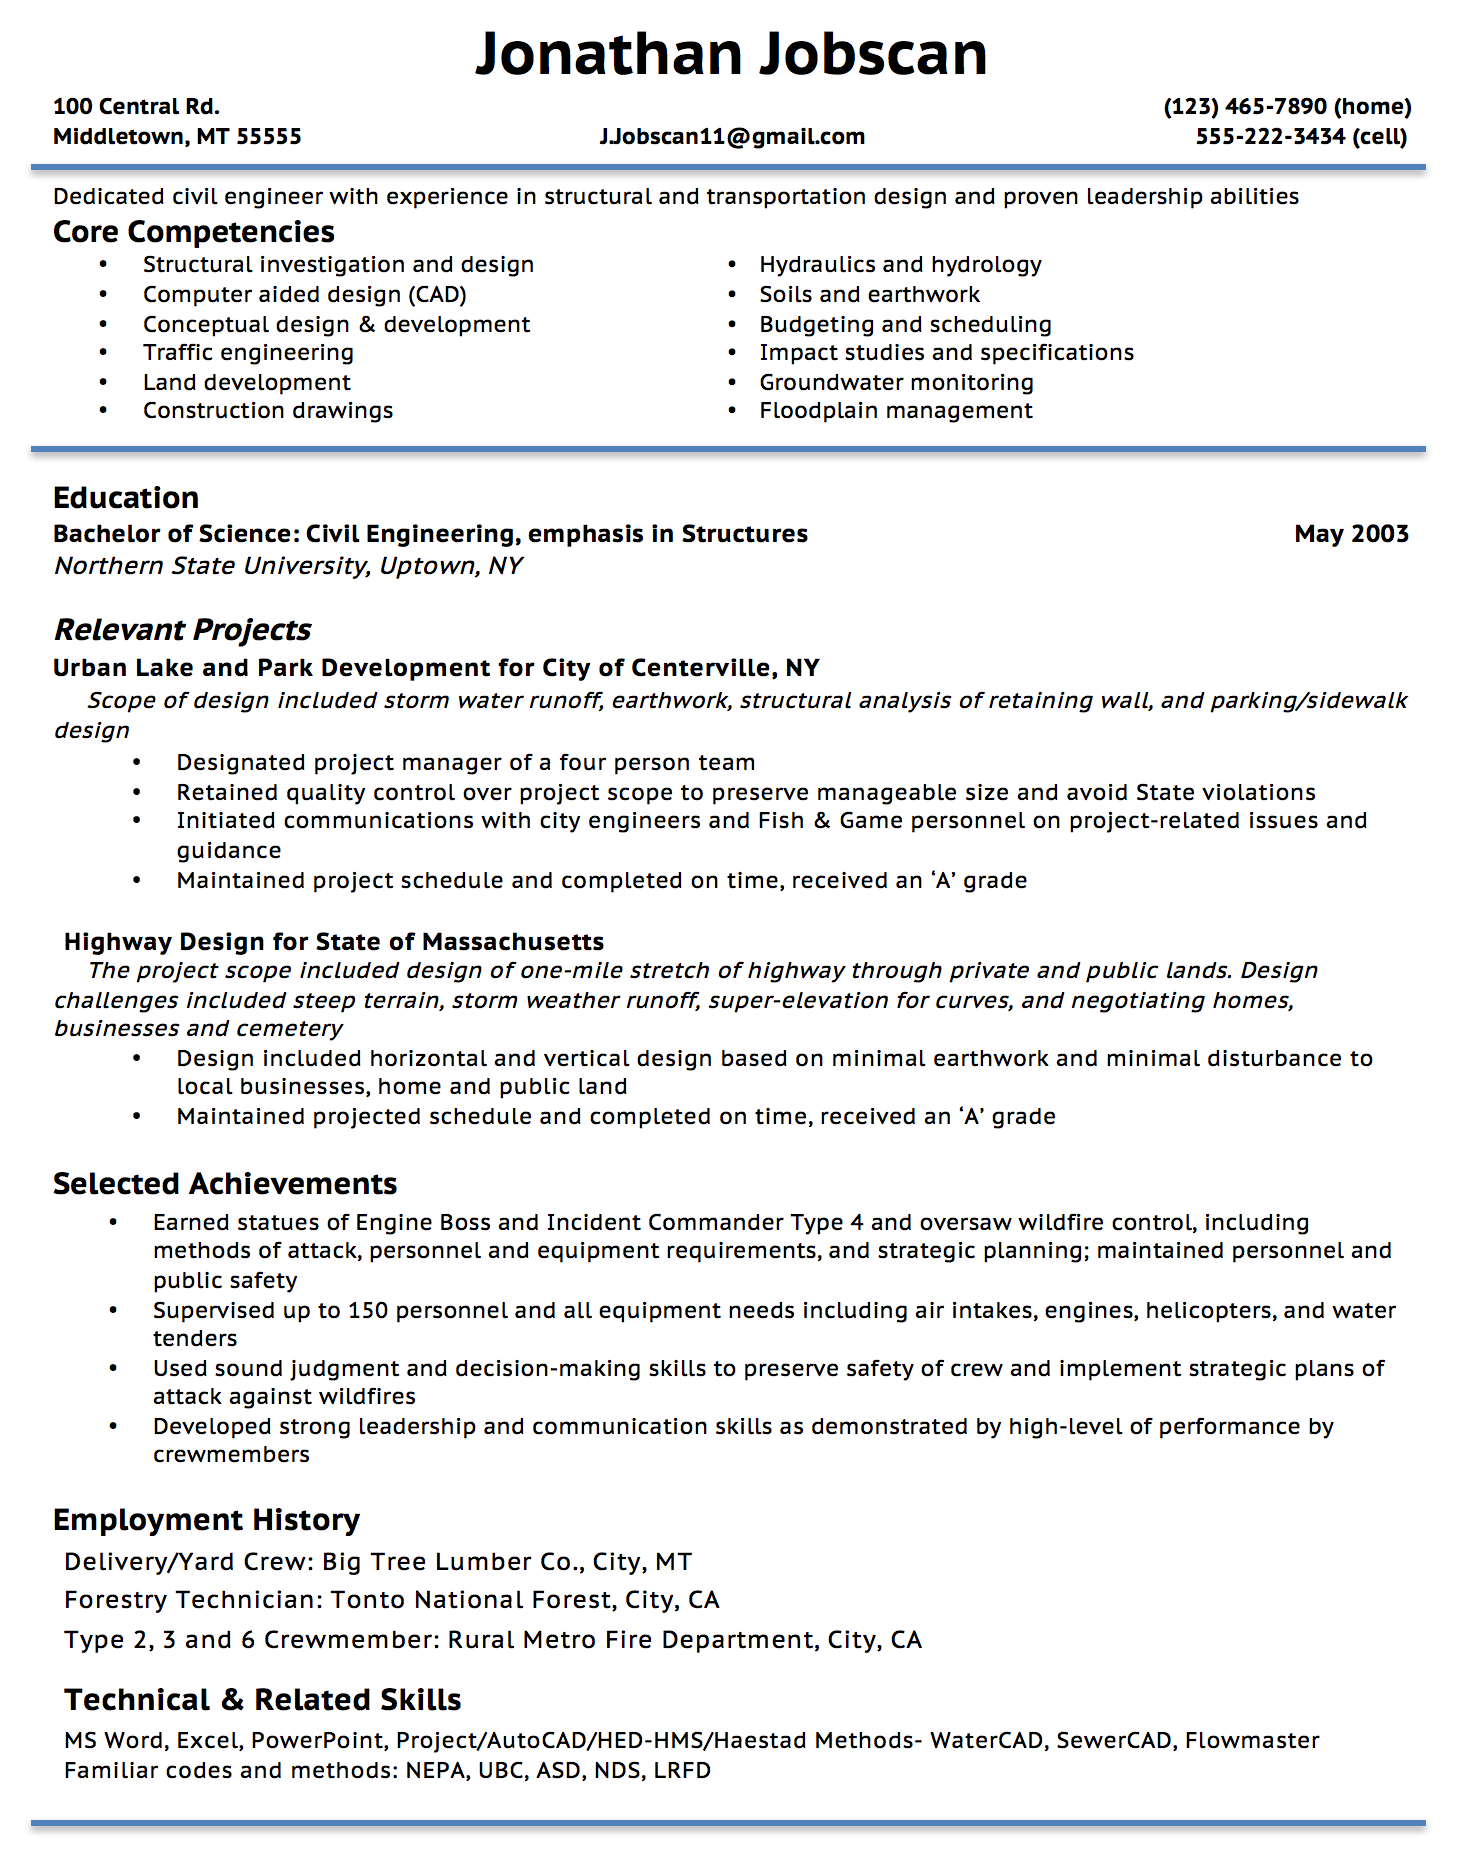 Picnictoimpeachus  Pretty Resume Writing Guide  Jobscan With Interesting Example Of A Functional Resume Format With Lovely Doorman Resume Also Assistant Project Manager Resume In Addition Store Clerk Resume And Data Analyst Sample Resume As Well As Dialysis Technician Resume Additionally Sample Resume For Customer Service Rep From Jobscanco With Picnictoimpeachus  Interesting Resume Writing Guide  Jobscan With Lovely Example Of A Functional Resume Format And Pretty Doorman Resume Also Assistant Project Manager Resume In Addition Store Clerk Resume From Jobscanco